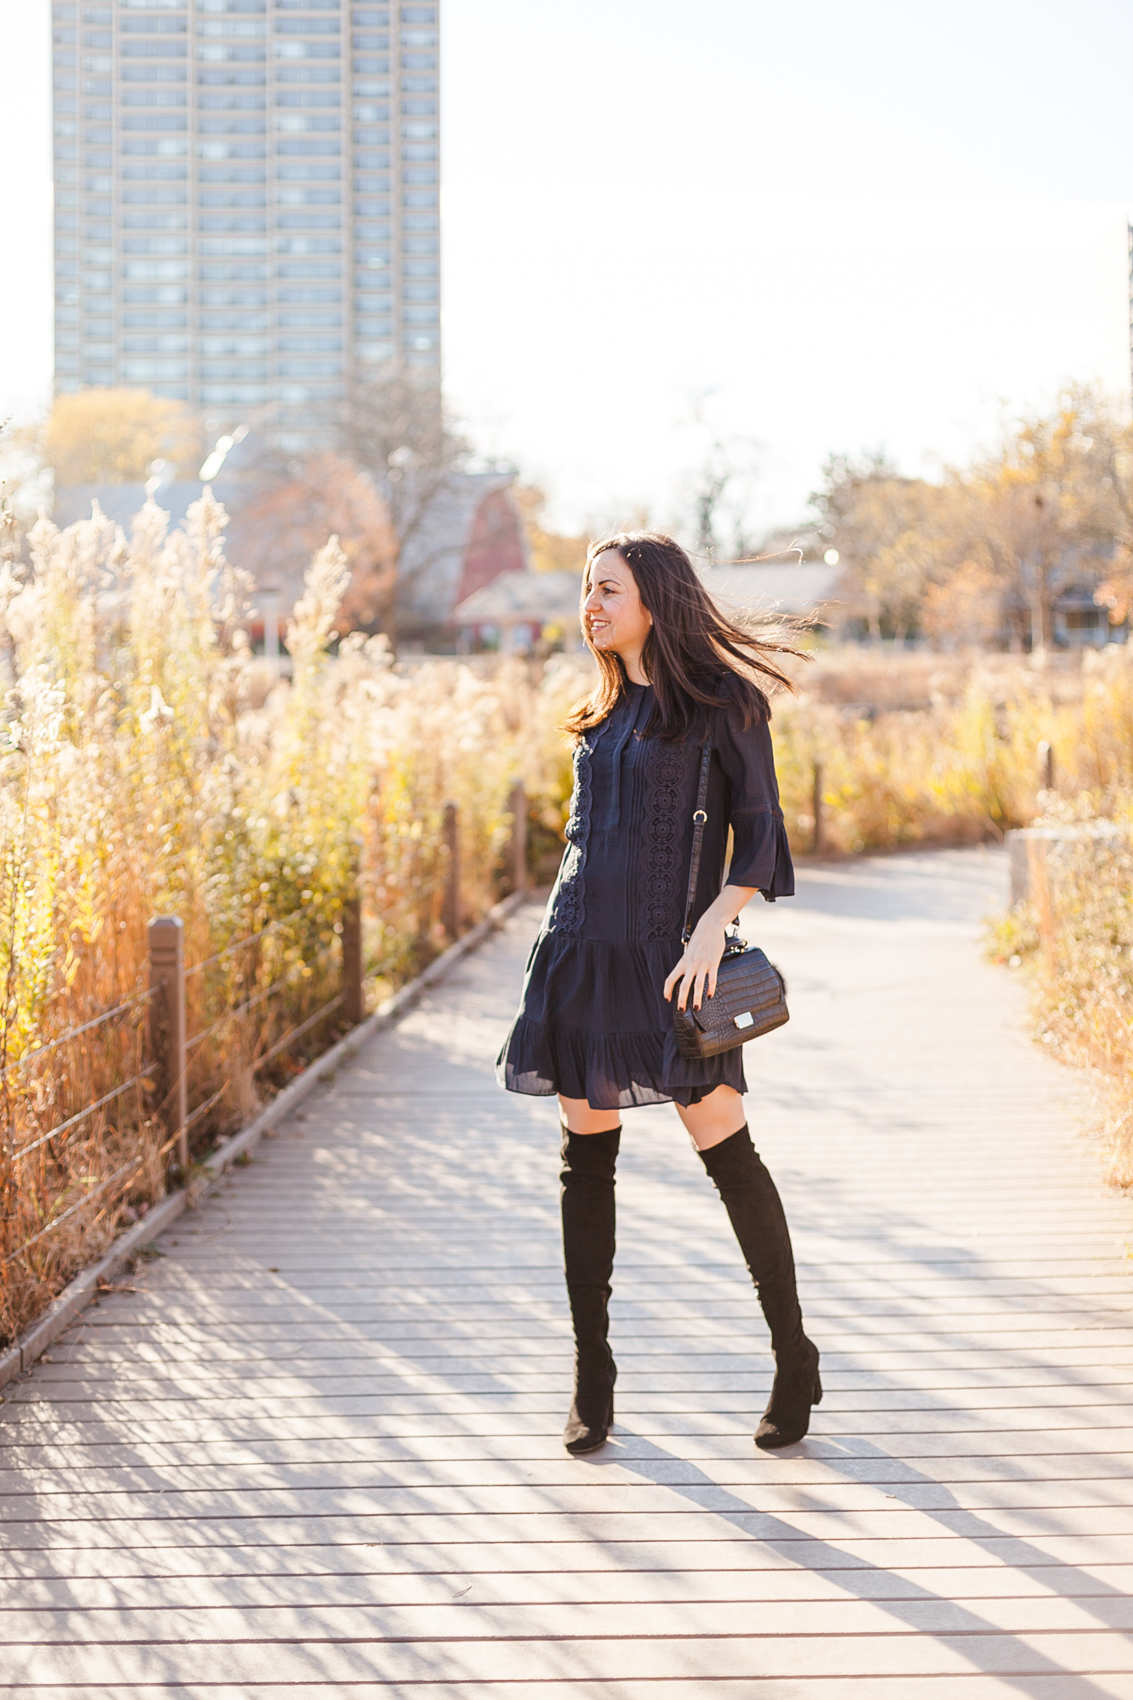 Yana Frigelis of NoMad Luxuries wearing a navy boho inspired dress from loft and over the knee boots for fall in chicago